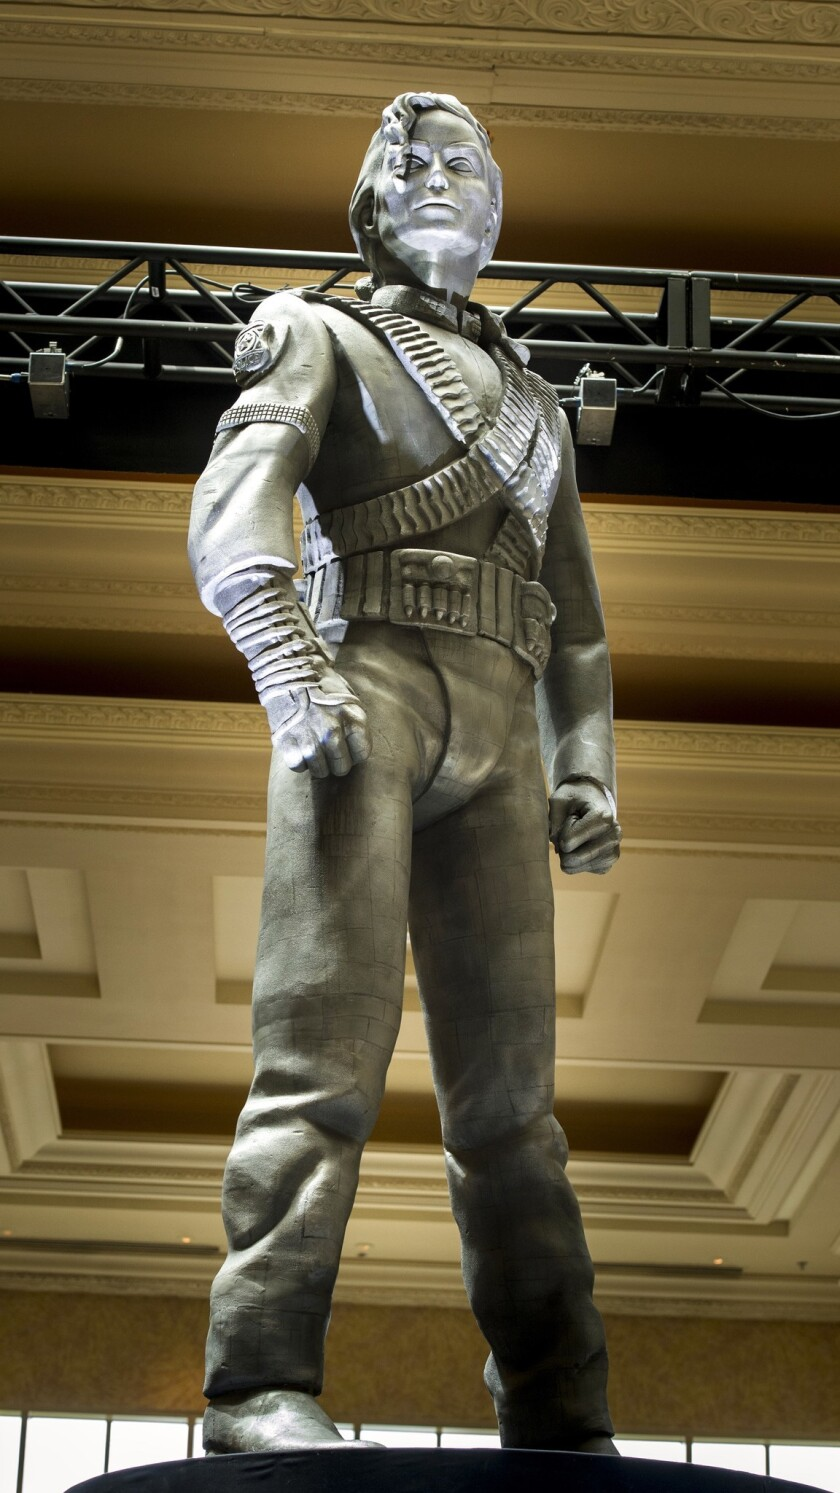 The statue of Michael Jackson is 10 feet tall and weighs 1,500 pounds.